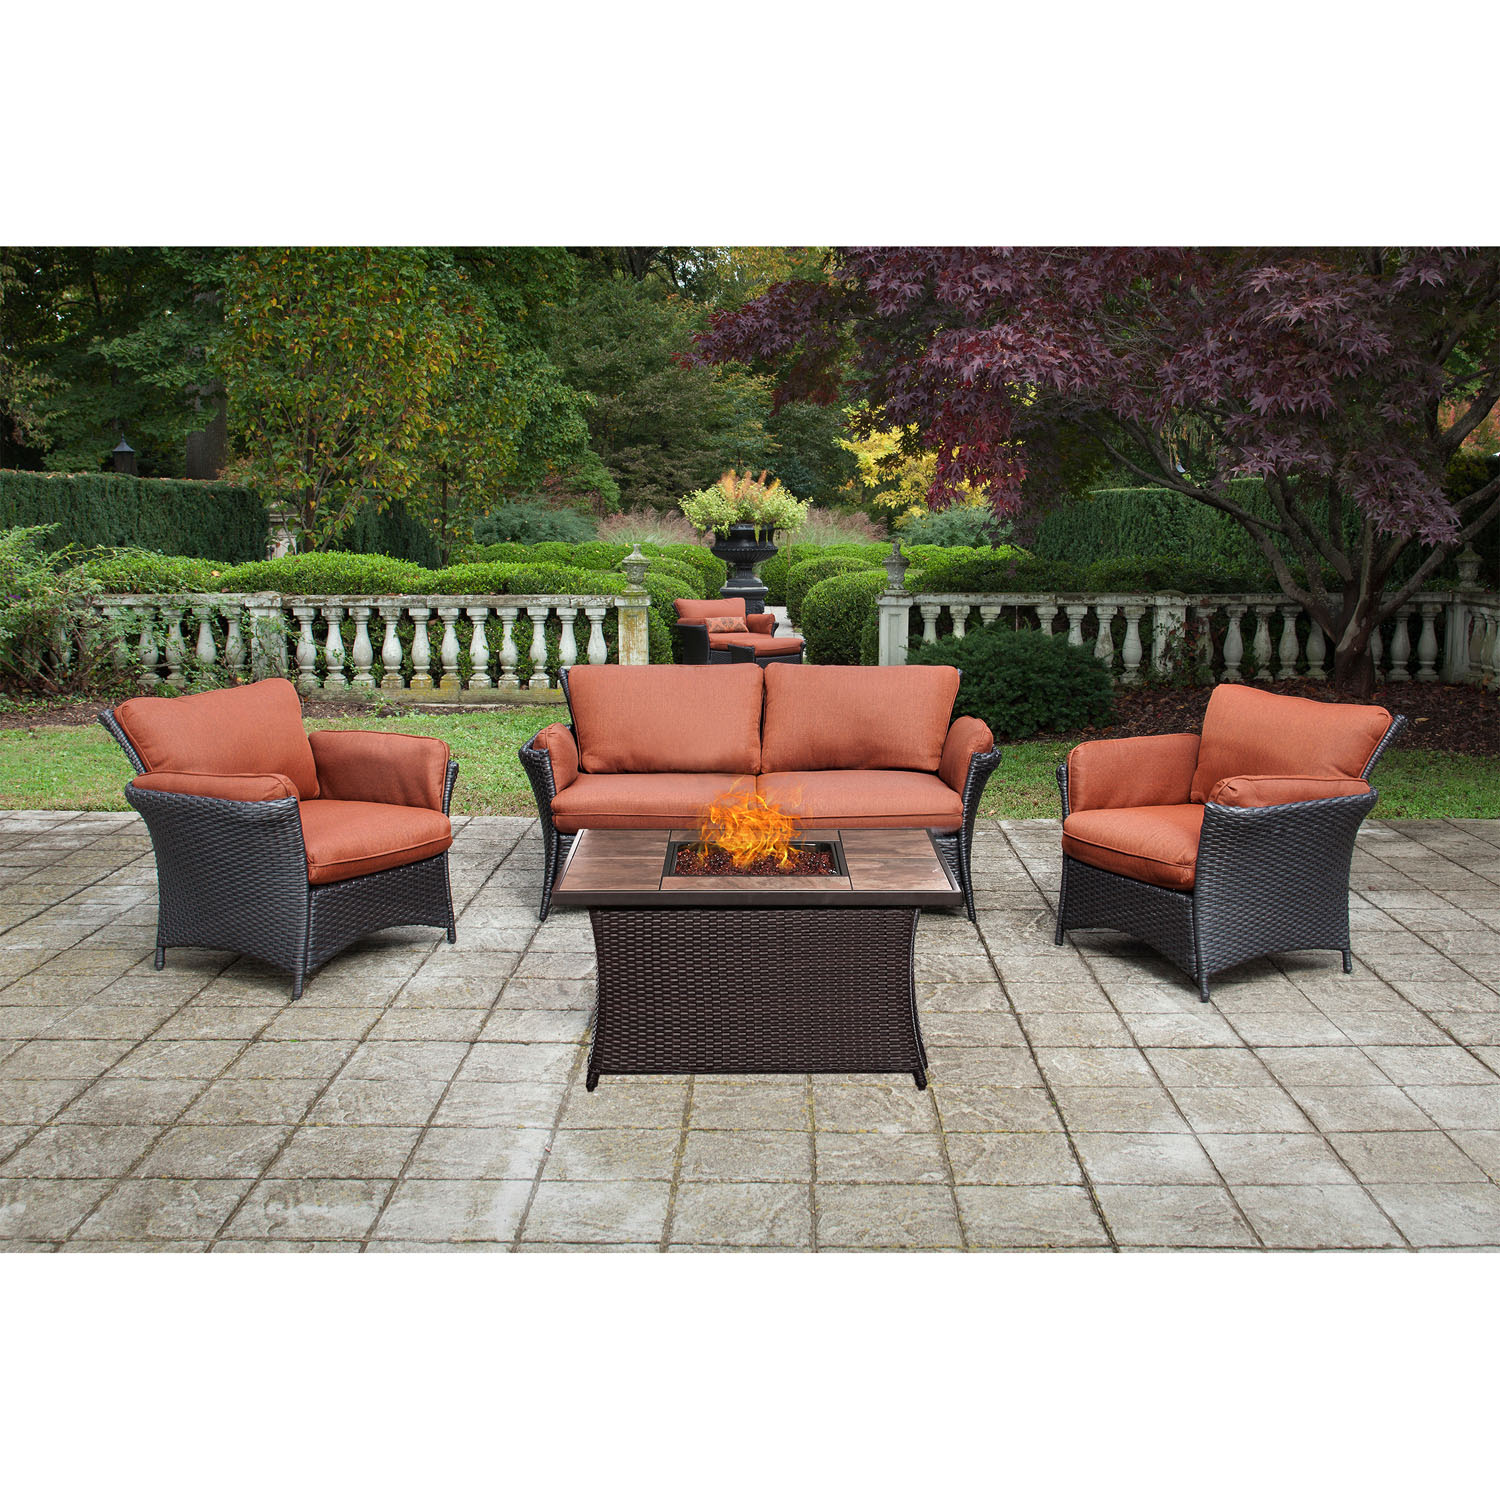 Hanover Strathmere Allure 4-Piece Woven Fire Pit Set with Faux-Stone Tile Top